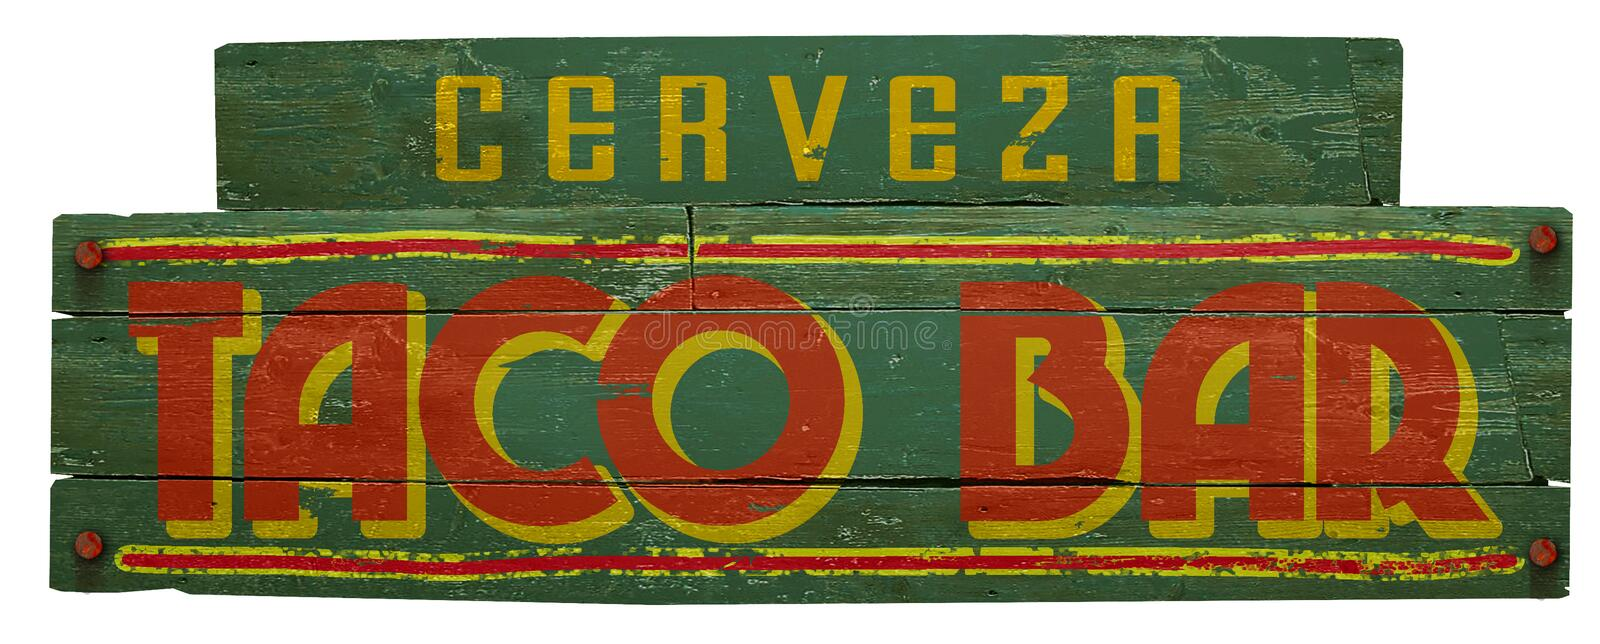 Taco Bar Cerveza Sign Wood Grunge Mexican Food obrazy royalty free